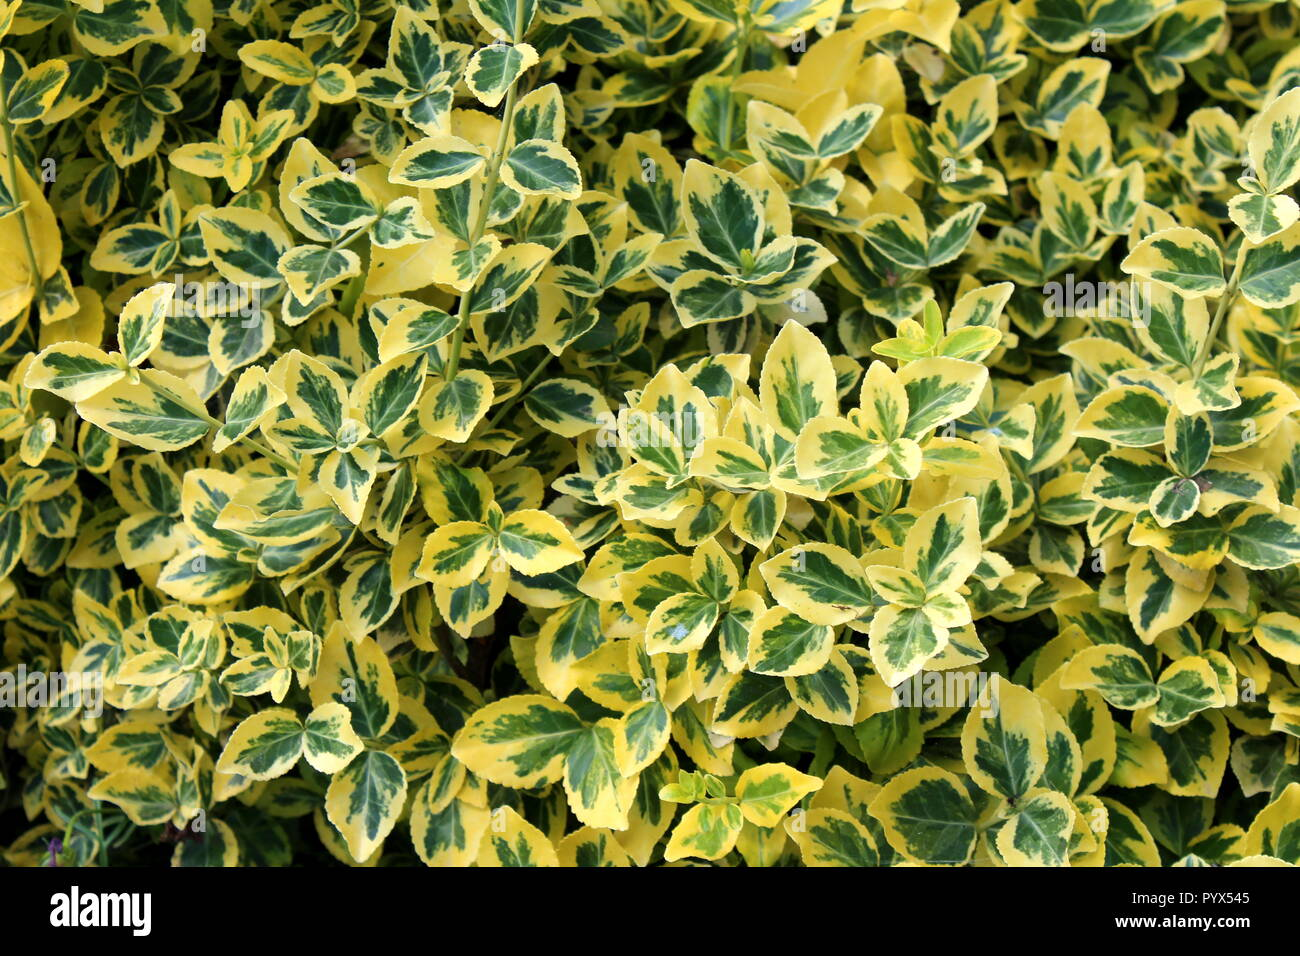 Wintercreeper or Euonymus fortunei or Spindle or Climbing euonymus or Fortunes spindle or Winter creeper evergreen shrub plant with green to yellow - Stock Image